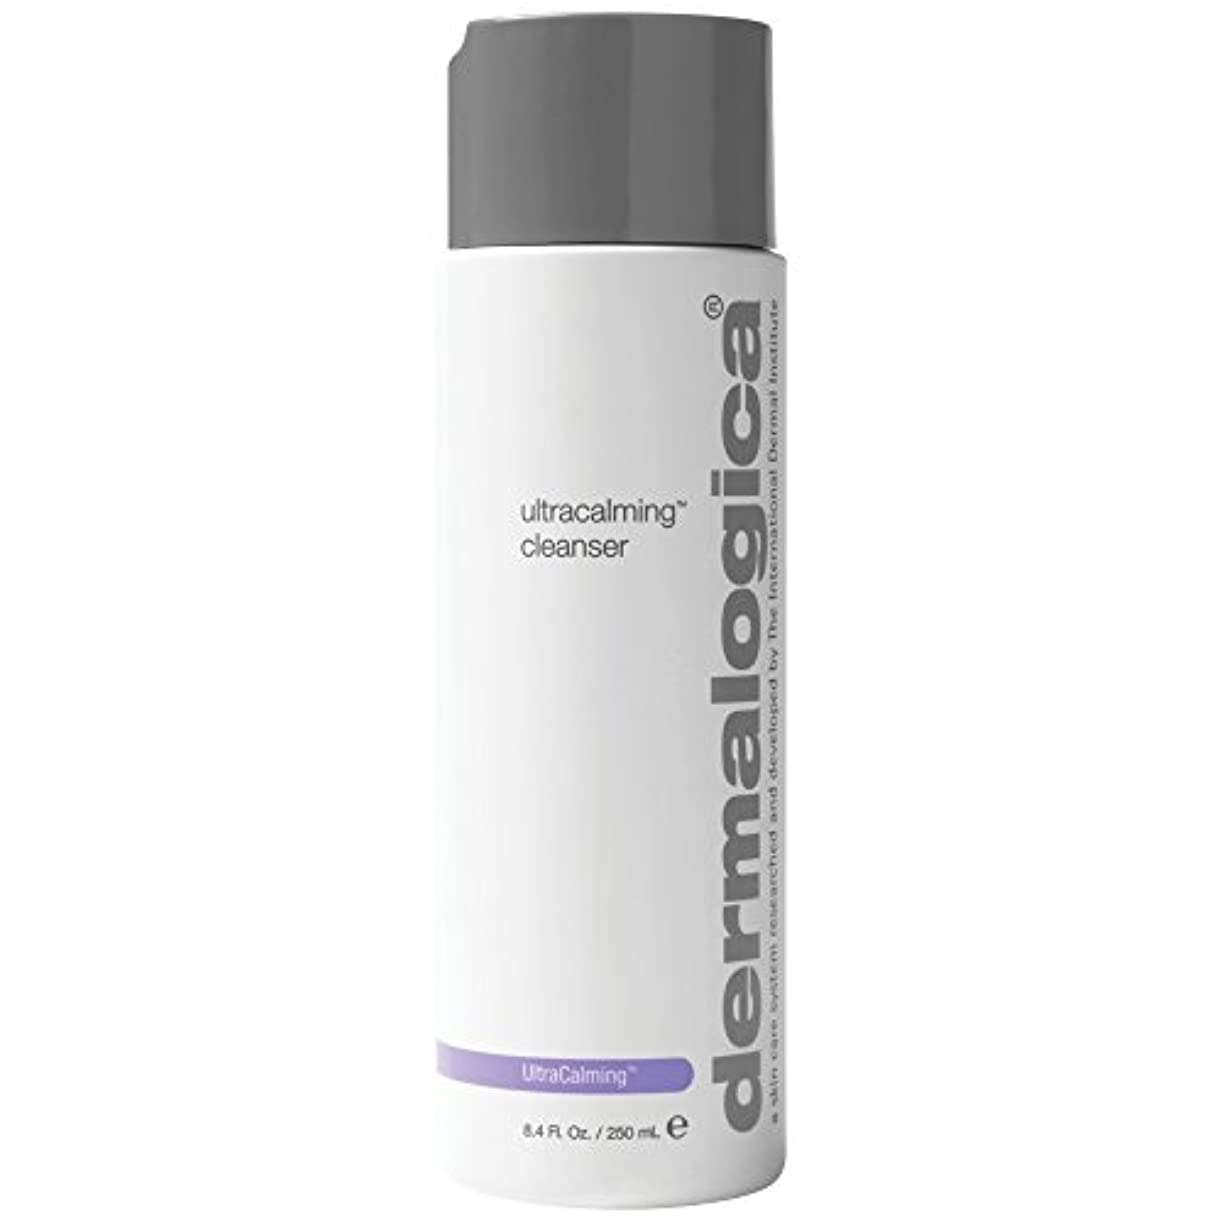 ダーマロジカUltracalming?クレンザーの250ミリリットル (Dermalogica) (x2) - Dermalogica UltraCalming? Cleanser 250ml (Pack of 2) [...